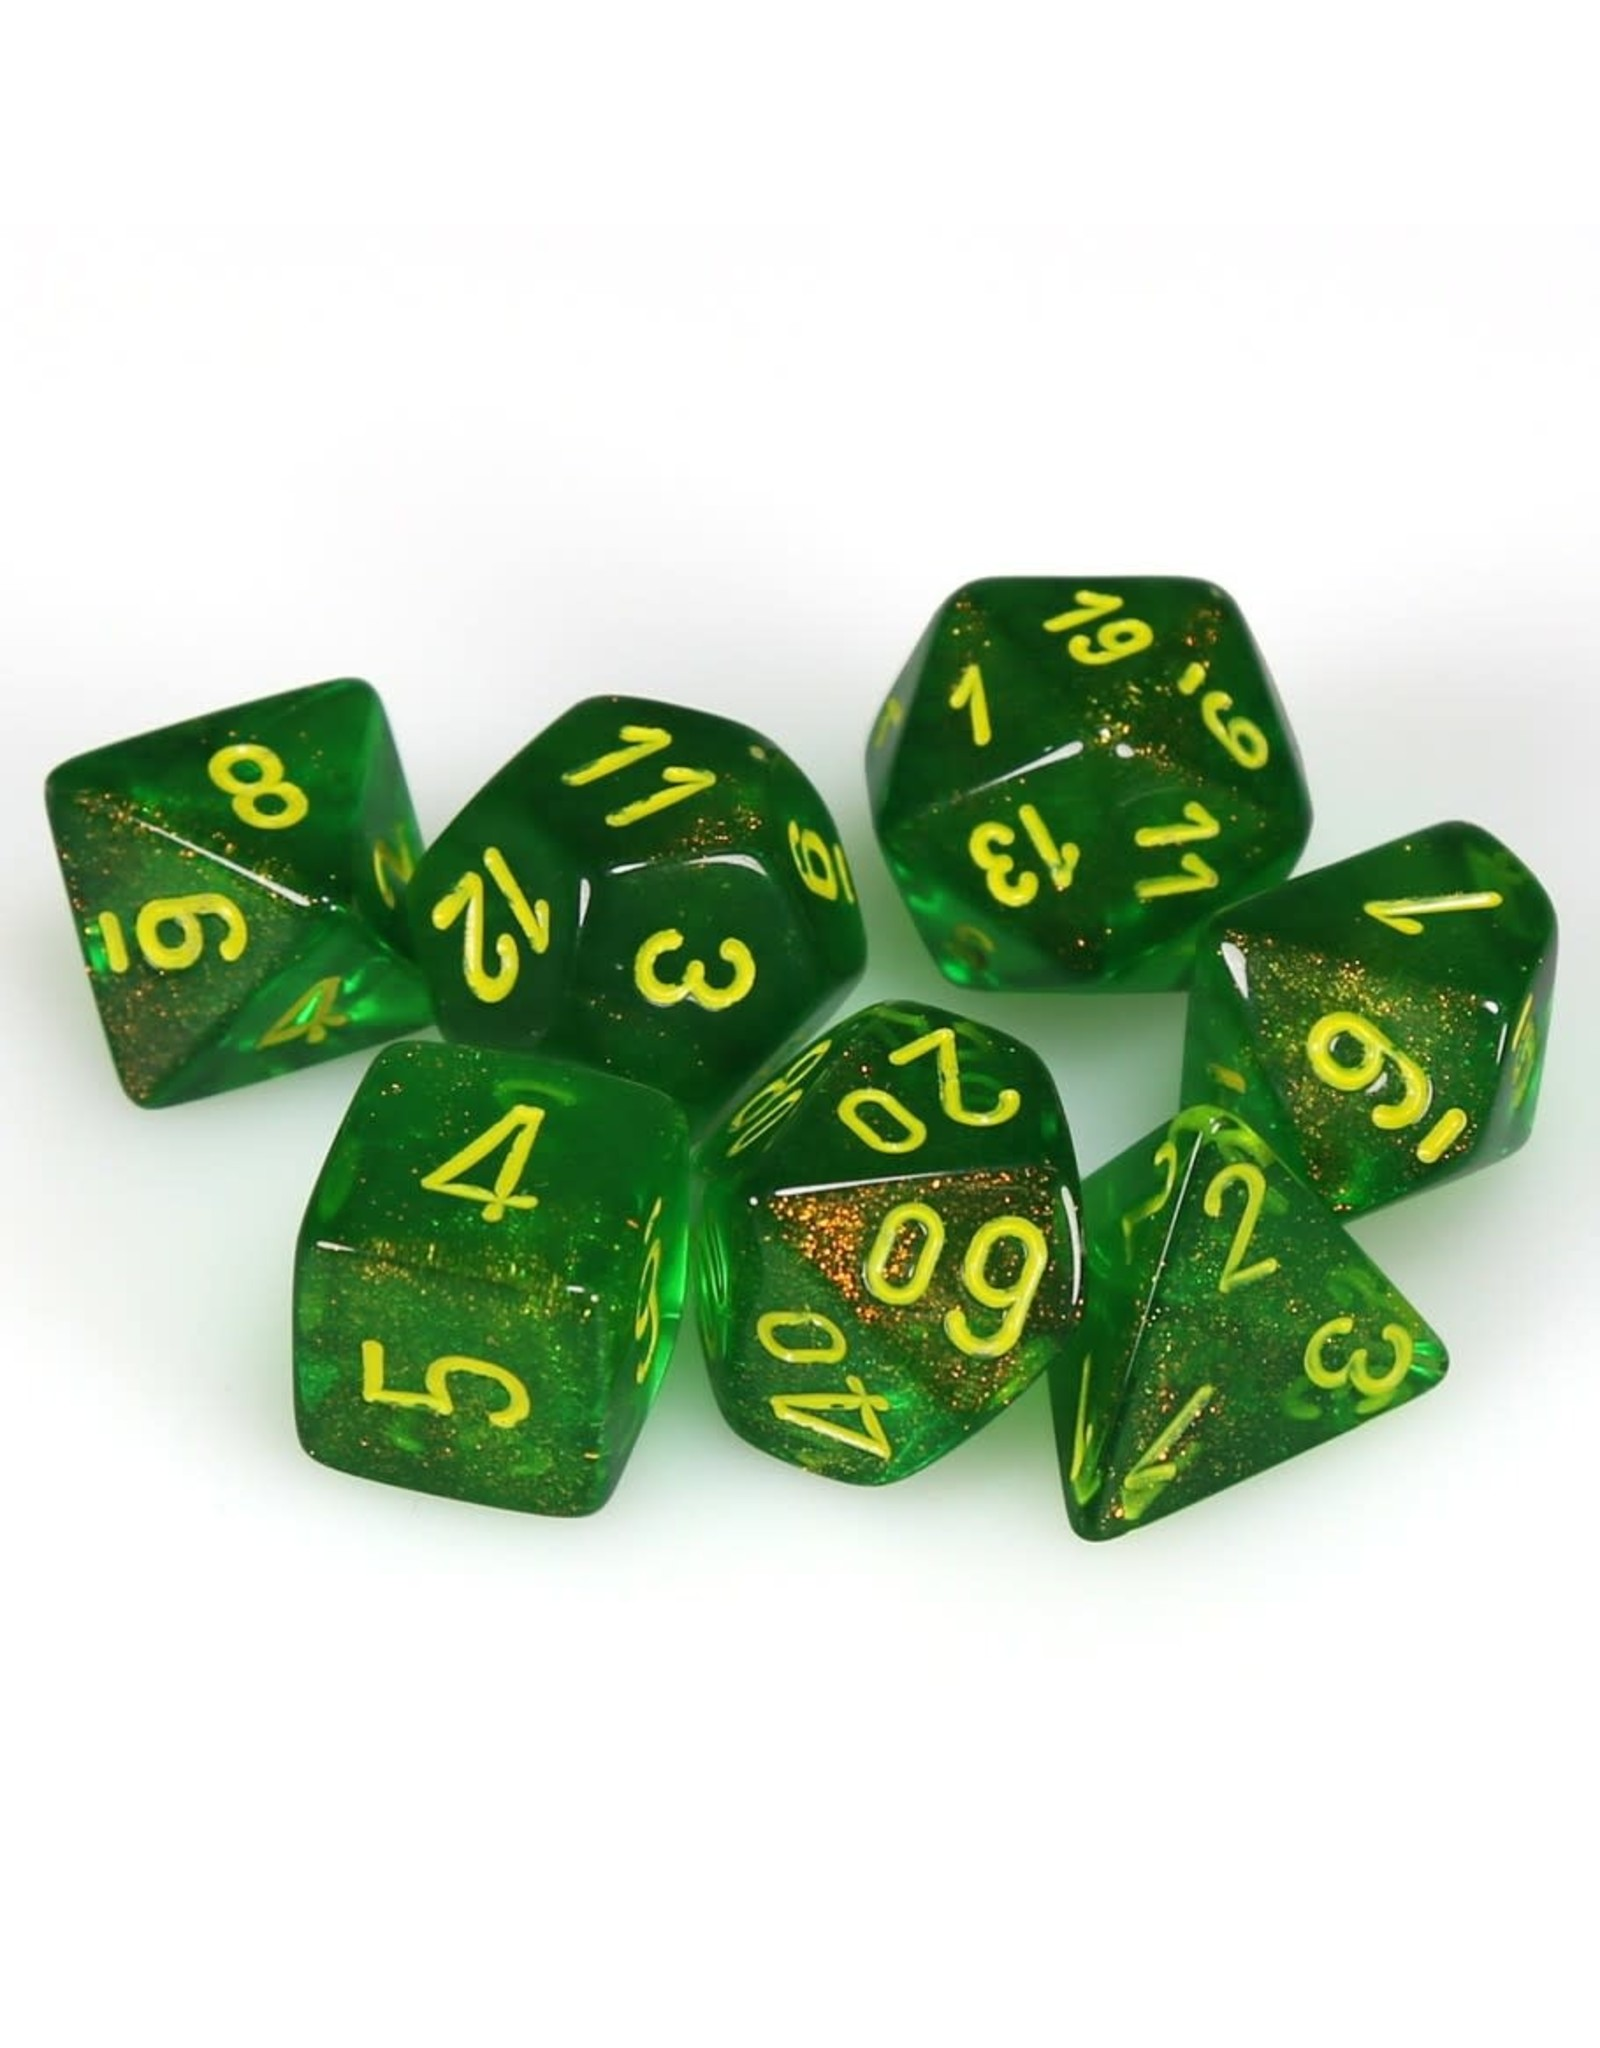 Chessex Chessex: 7-Die Set: Borealis - Maple Green/Yellow